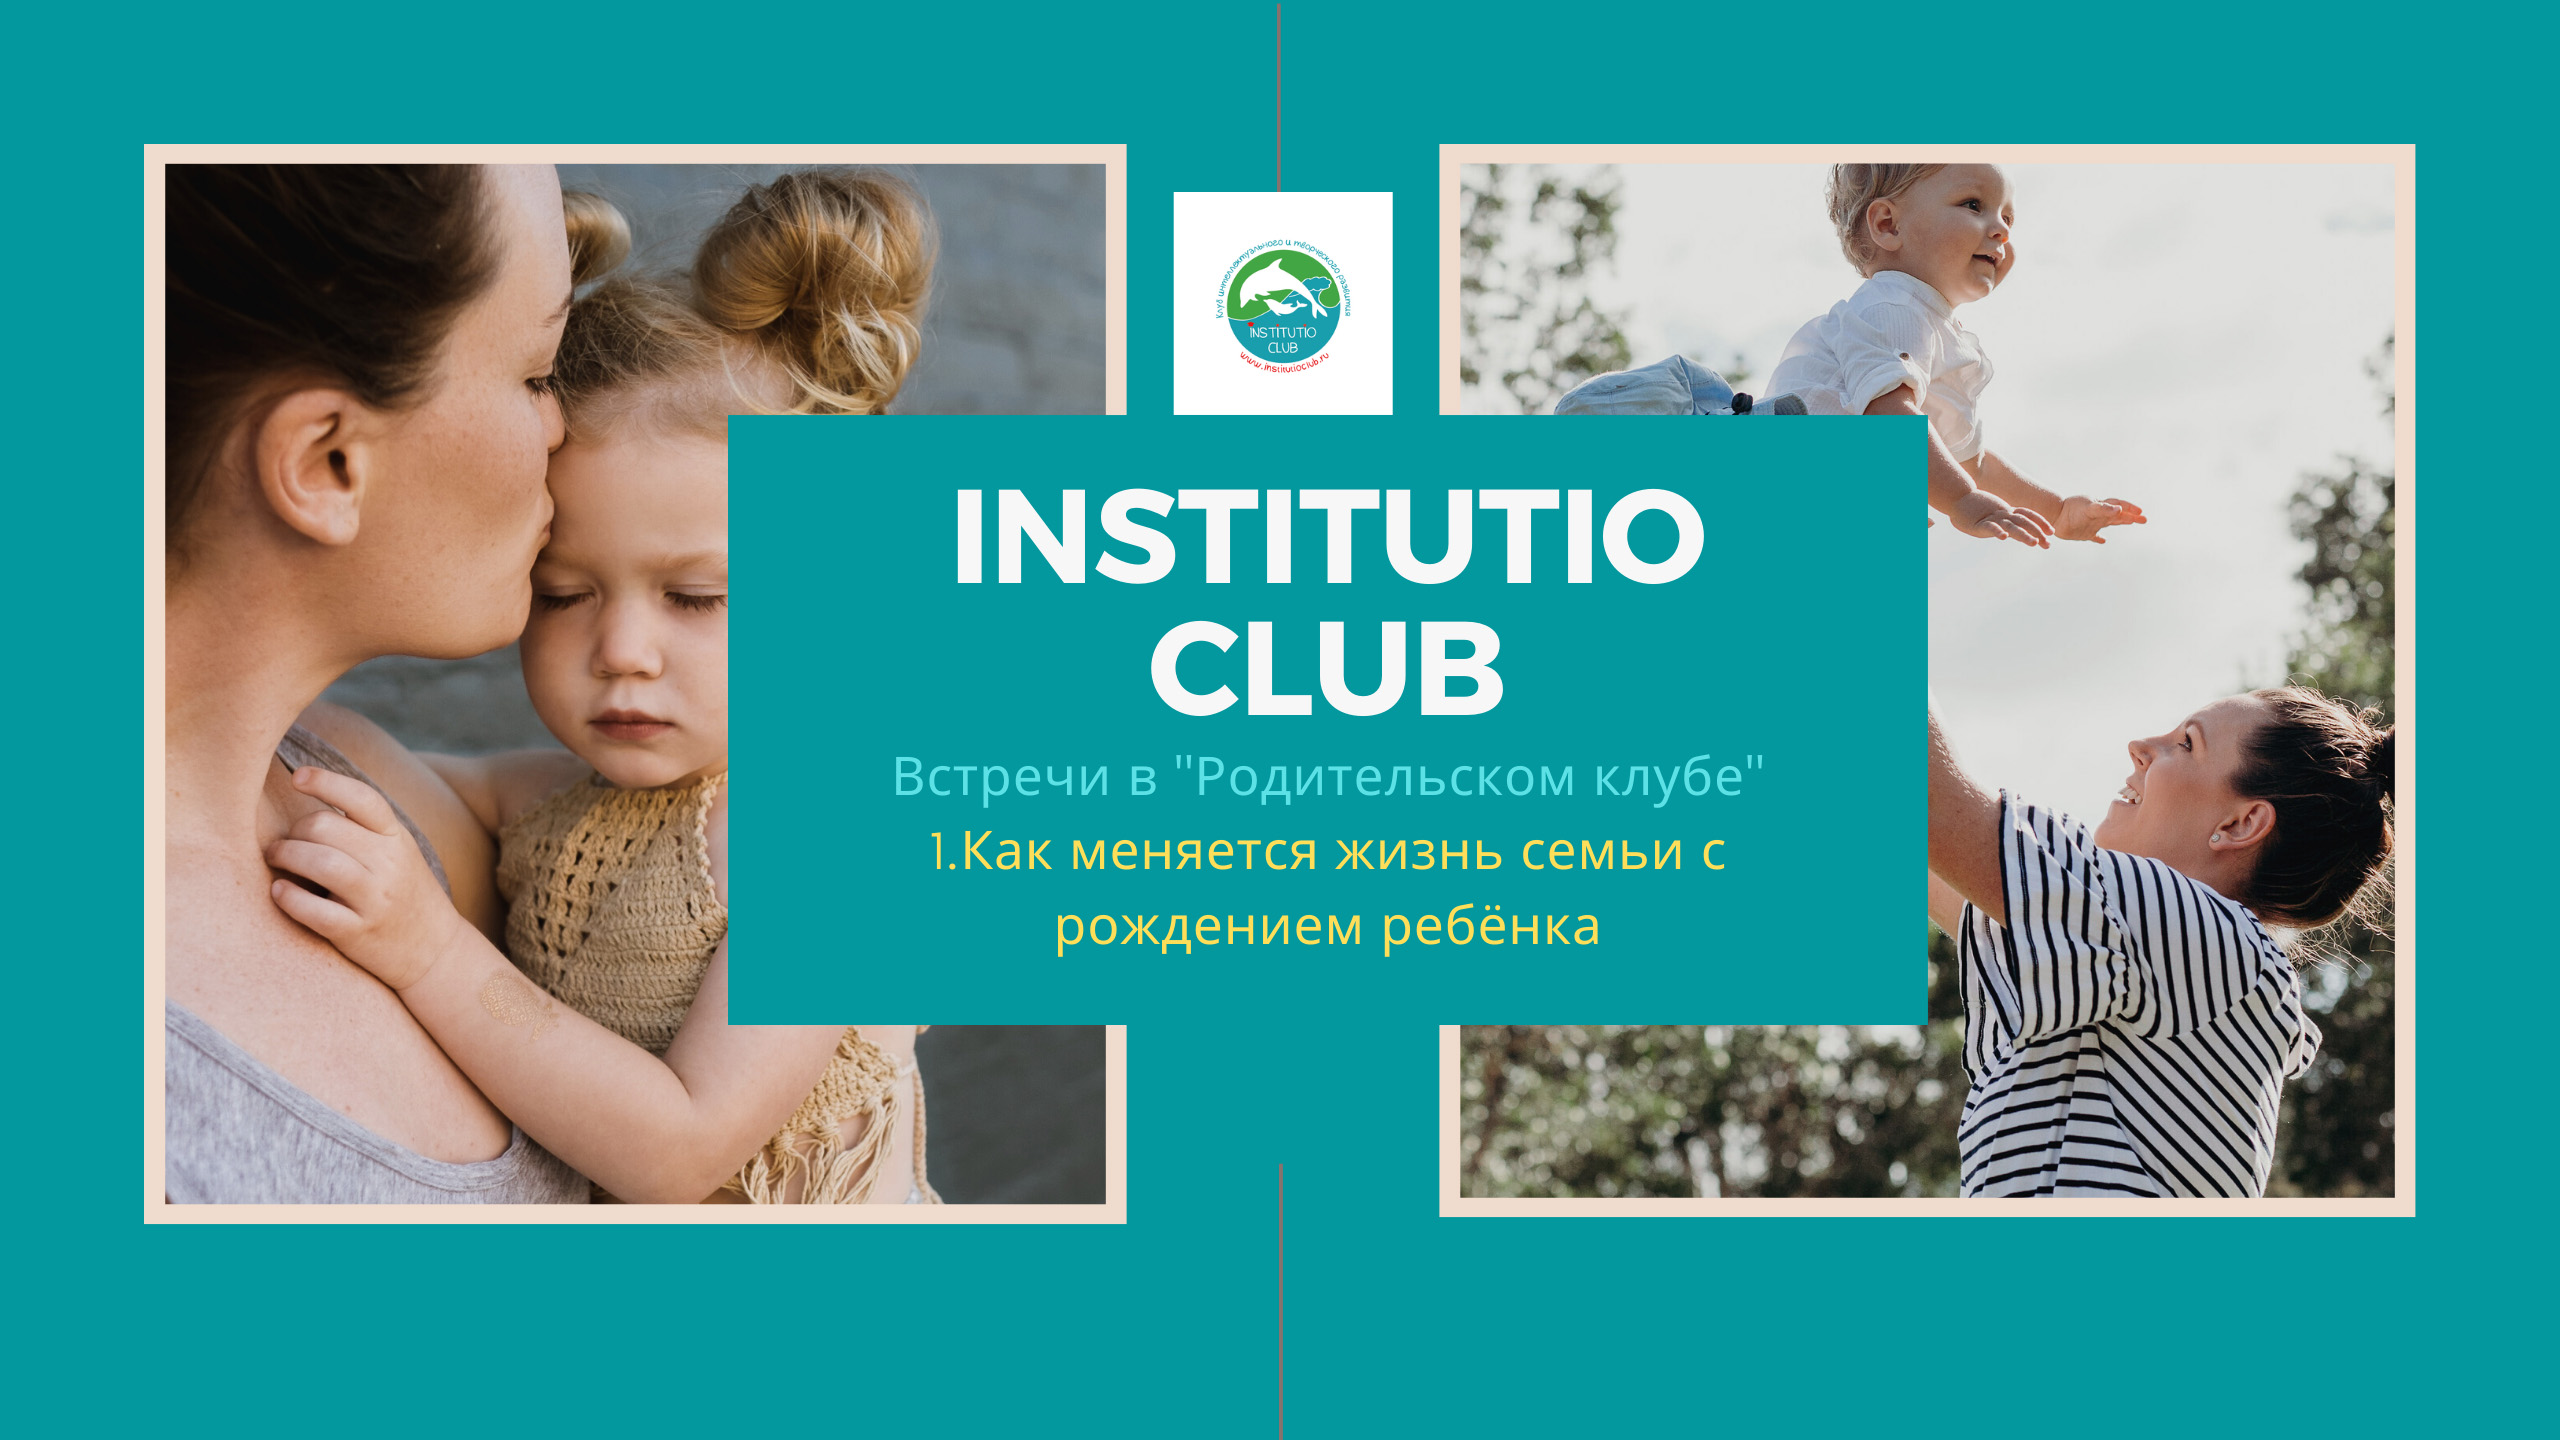 INSTITUTIO CLUB